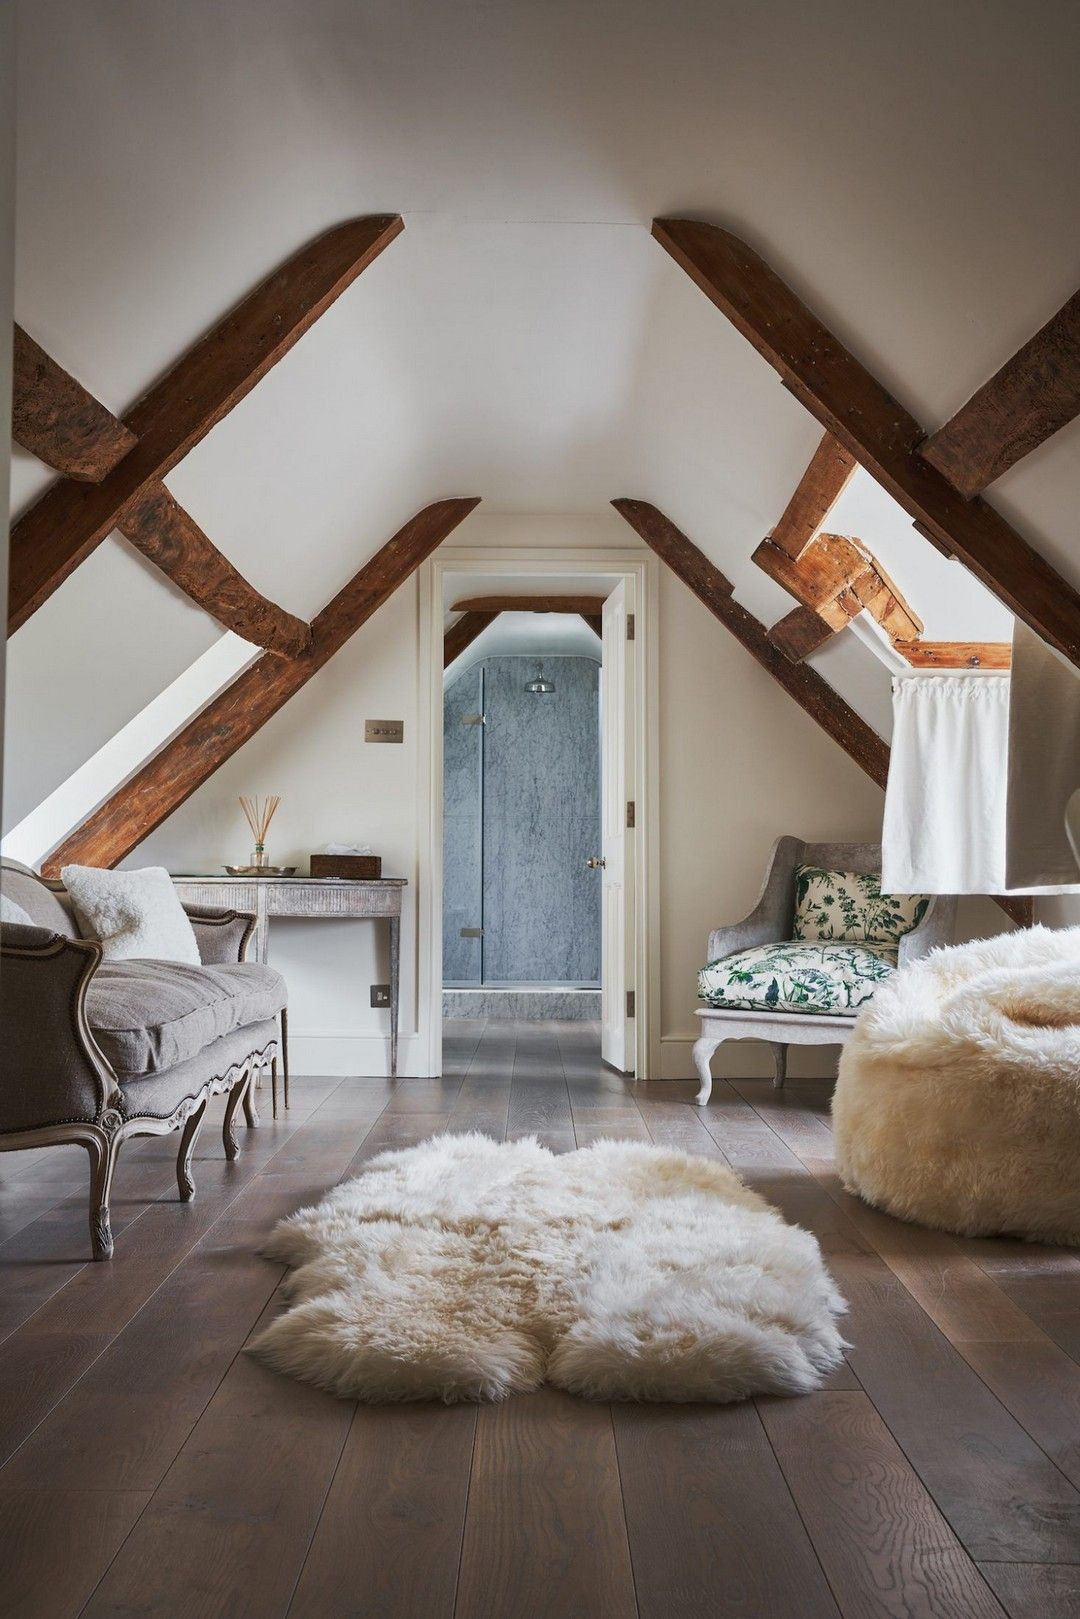 23 ways to create a beautiful and comfortable bed in 2019 bedroom rh pinterest com